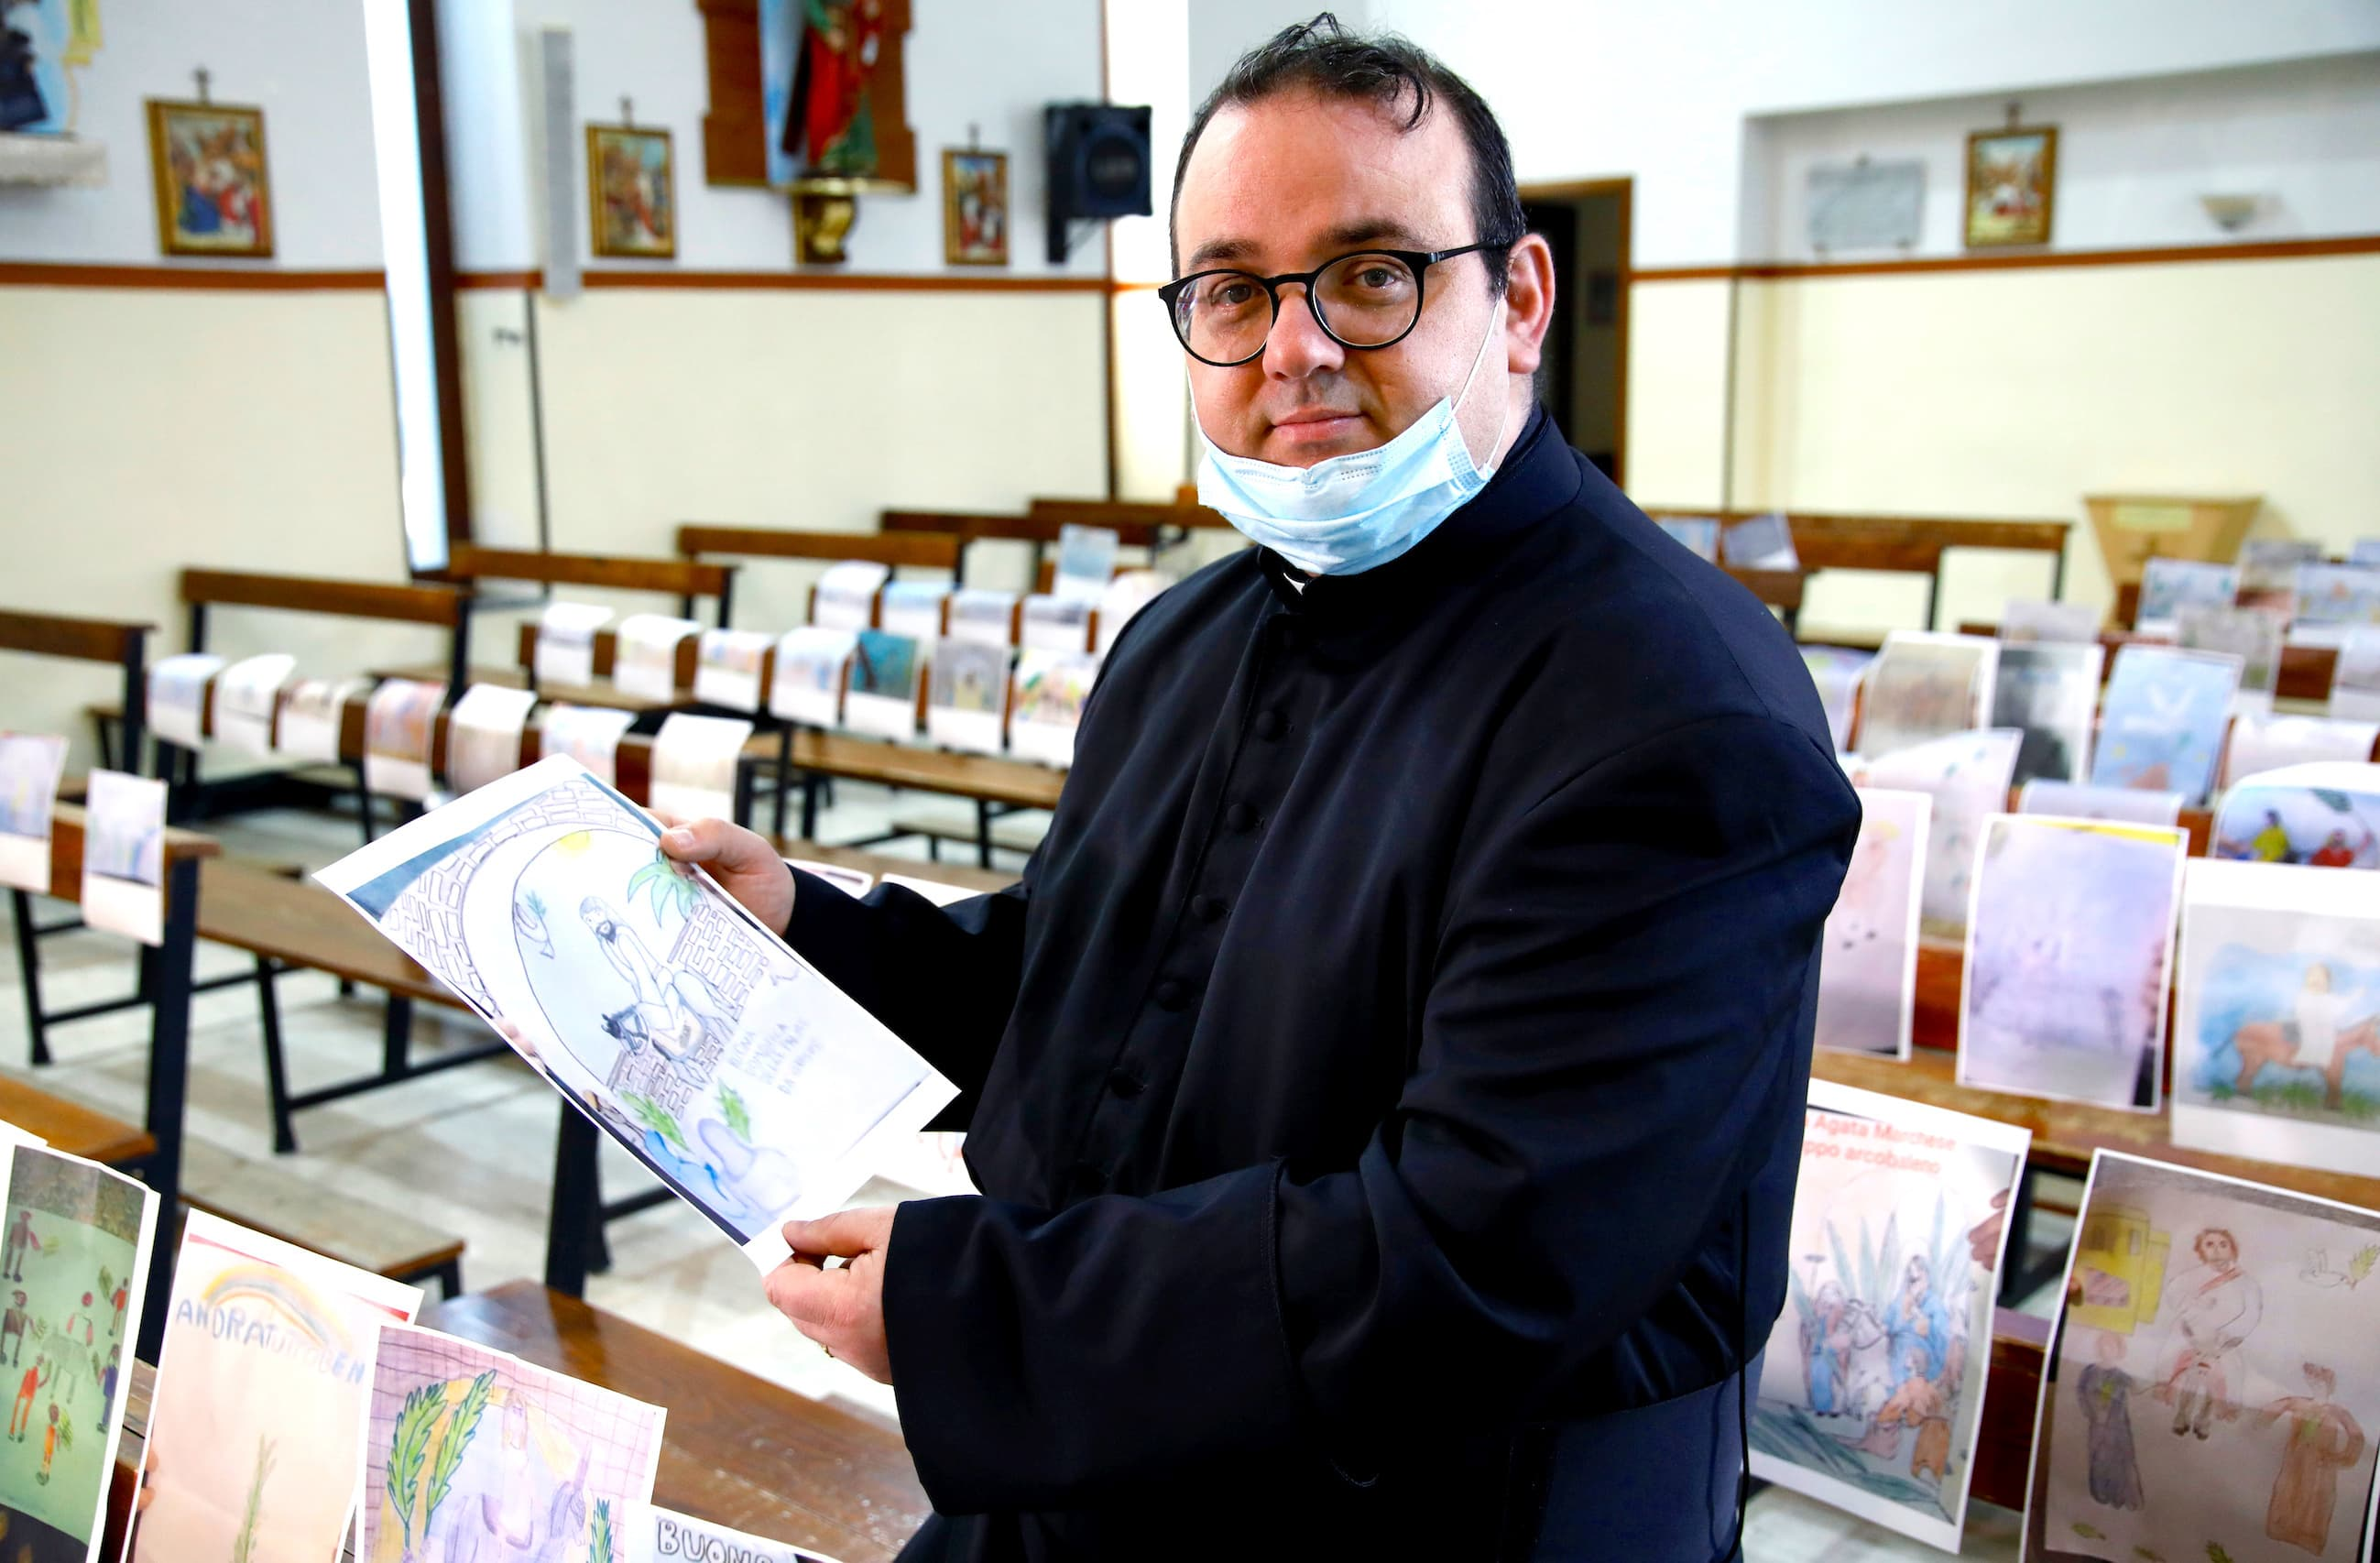 Father Fabio Vassallo poses with drawings done by children of members of the congregation decorating the pews, ahead of a Holy Thursday Mass in an empty church, as Italy celebrates Easter under lockdown. — Reuters